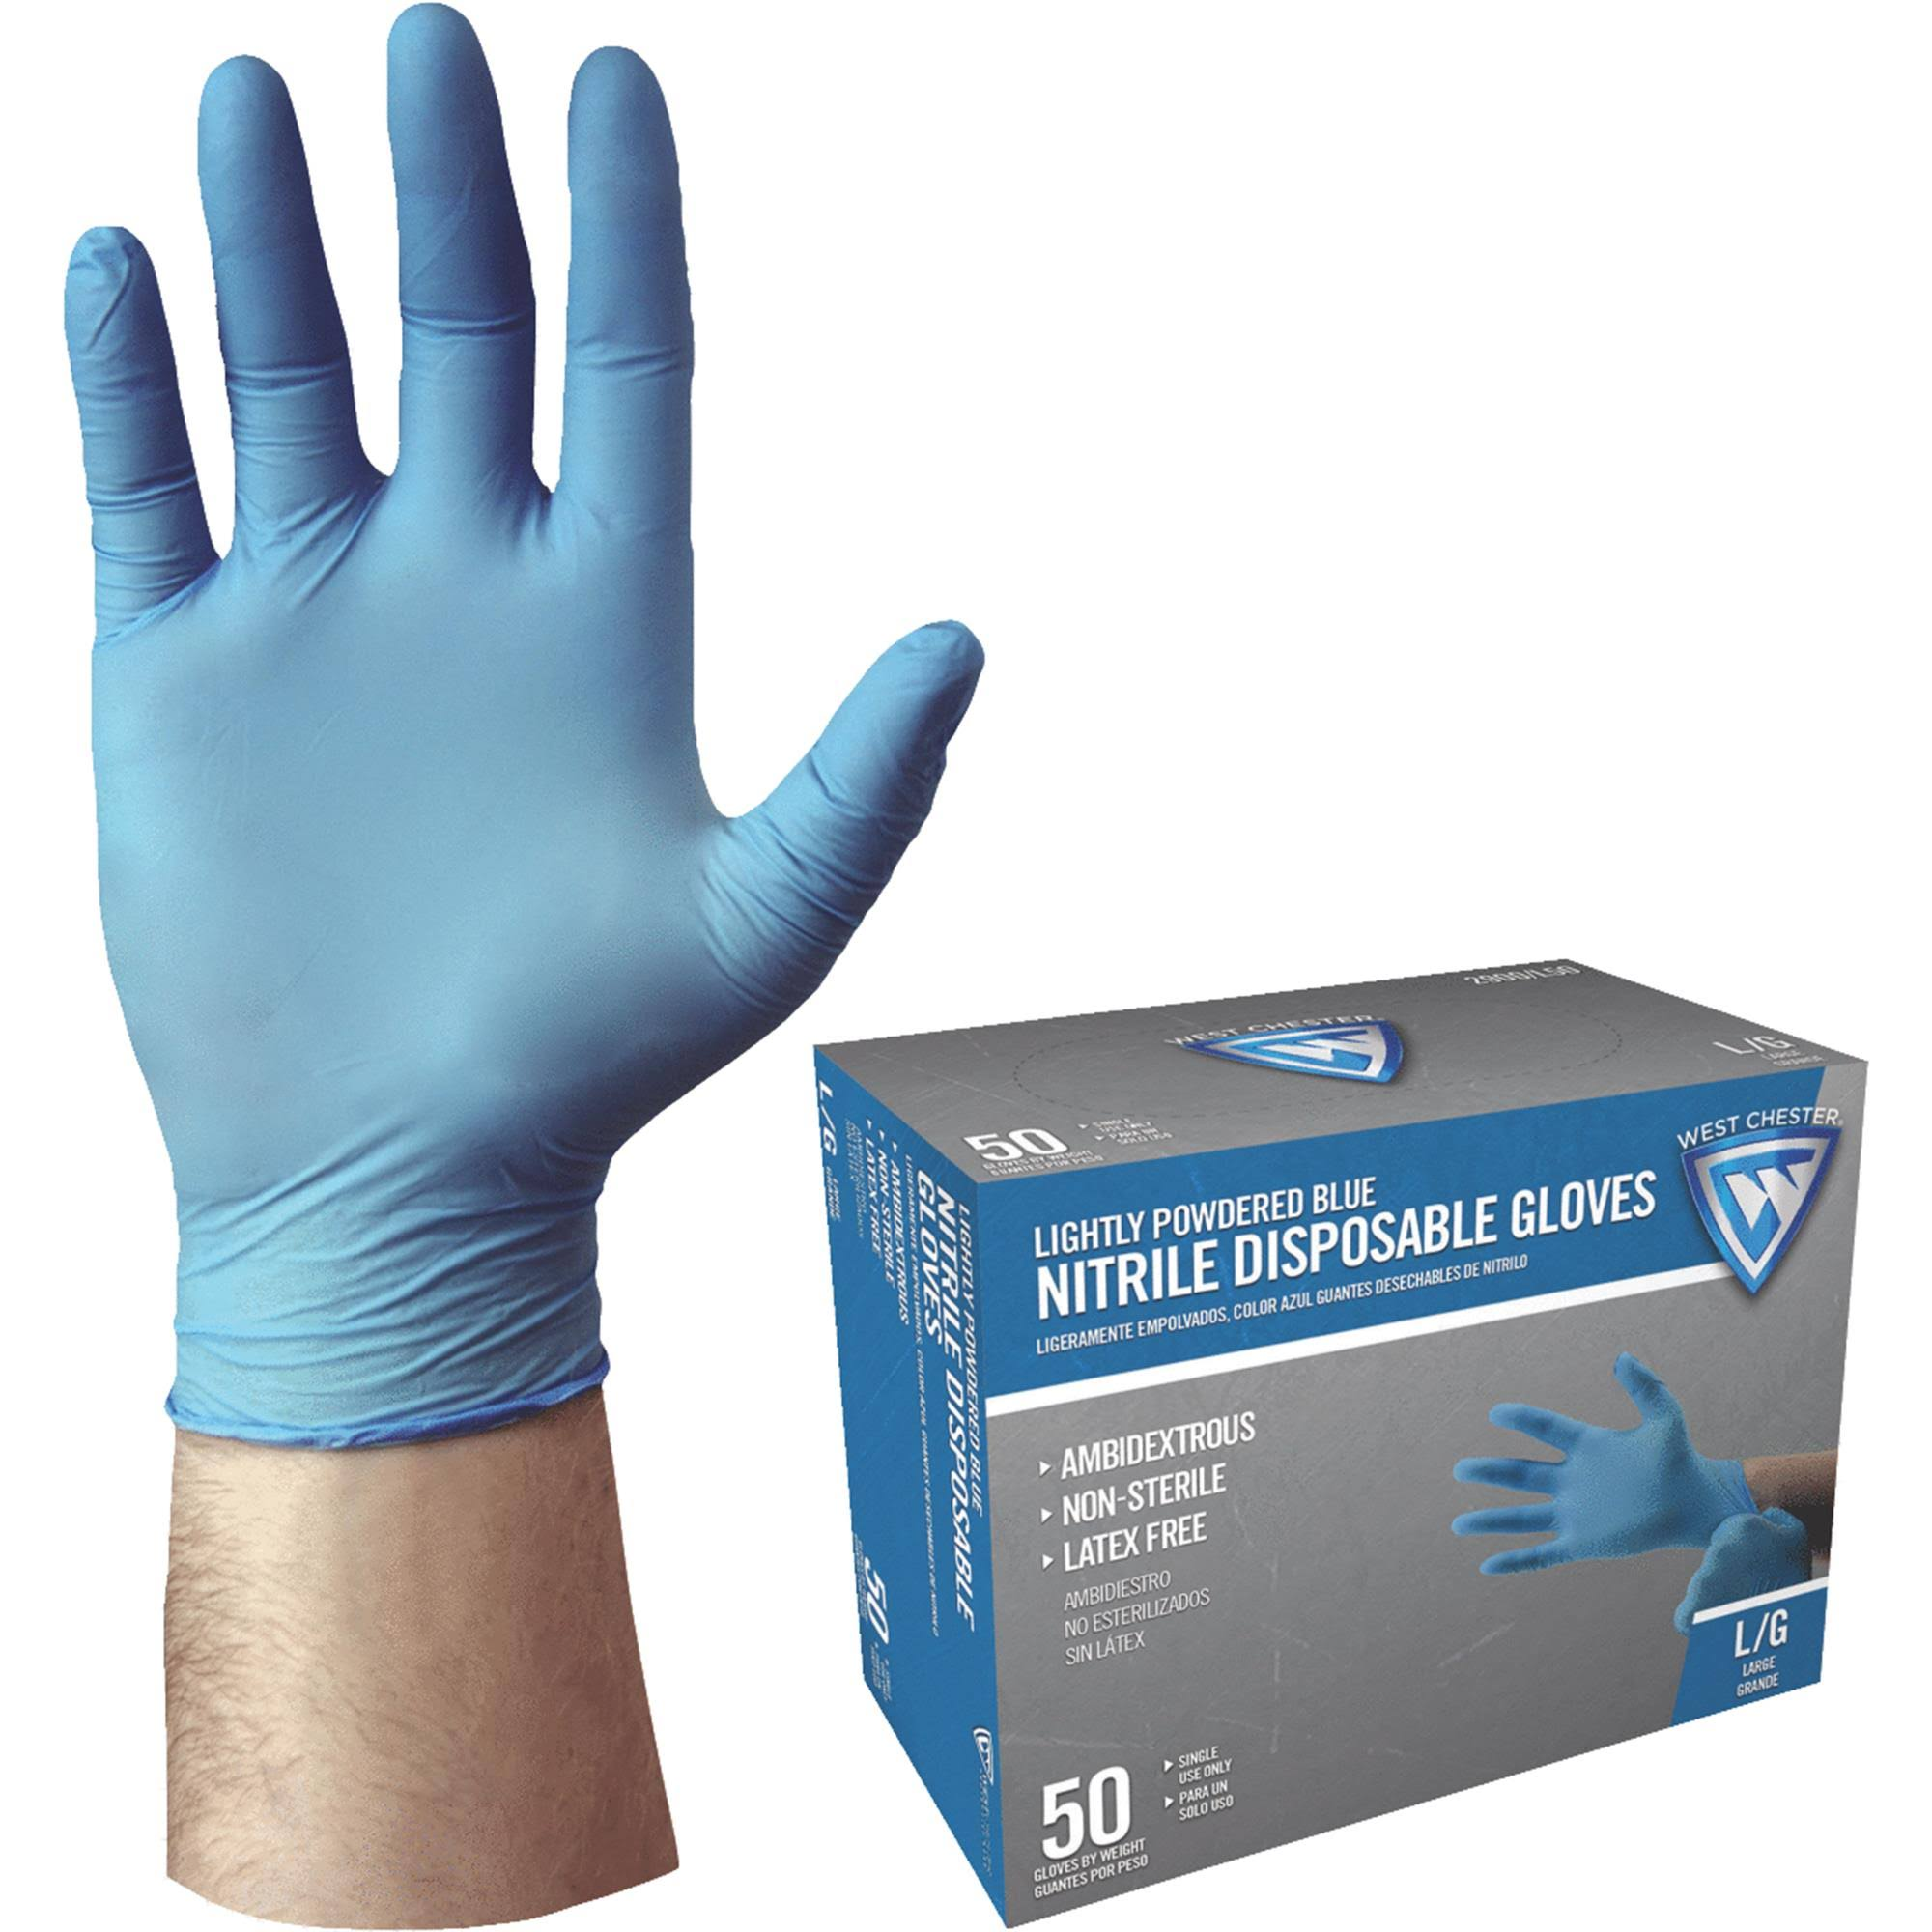 West Chester Nitrile Disposable Glove - Blue, Large